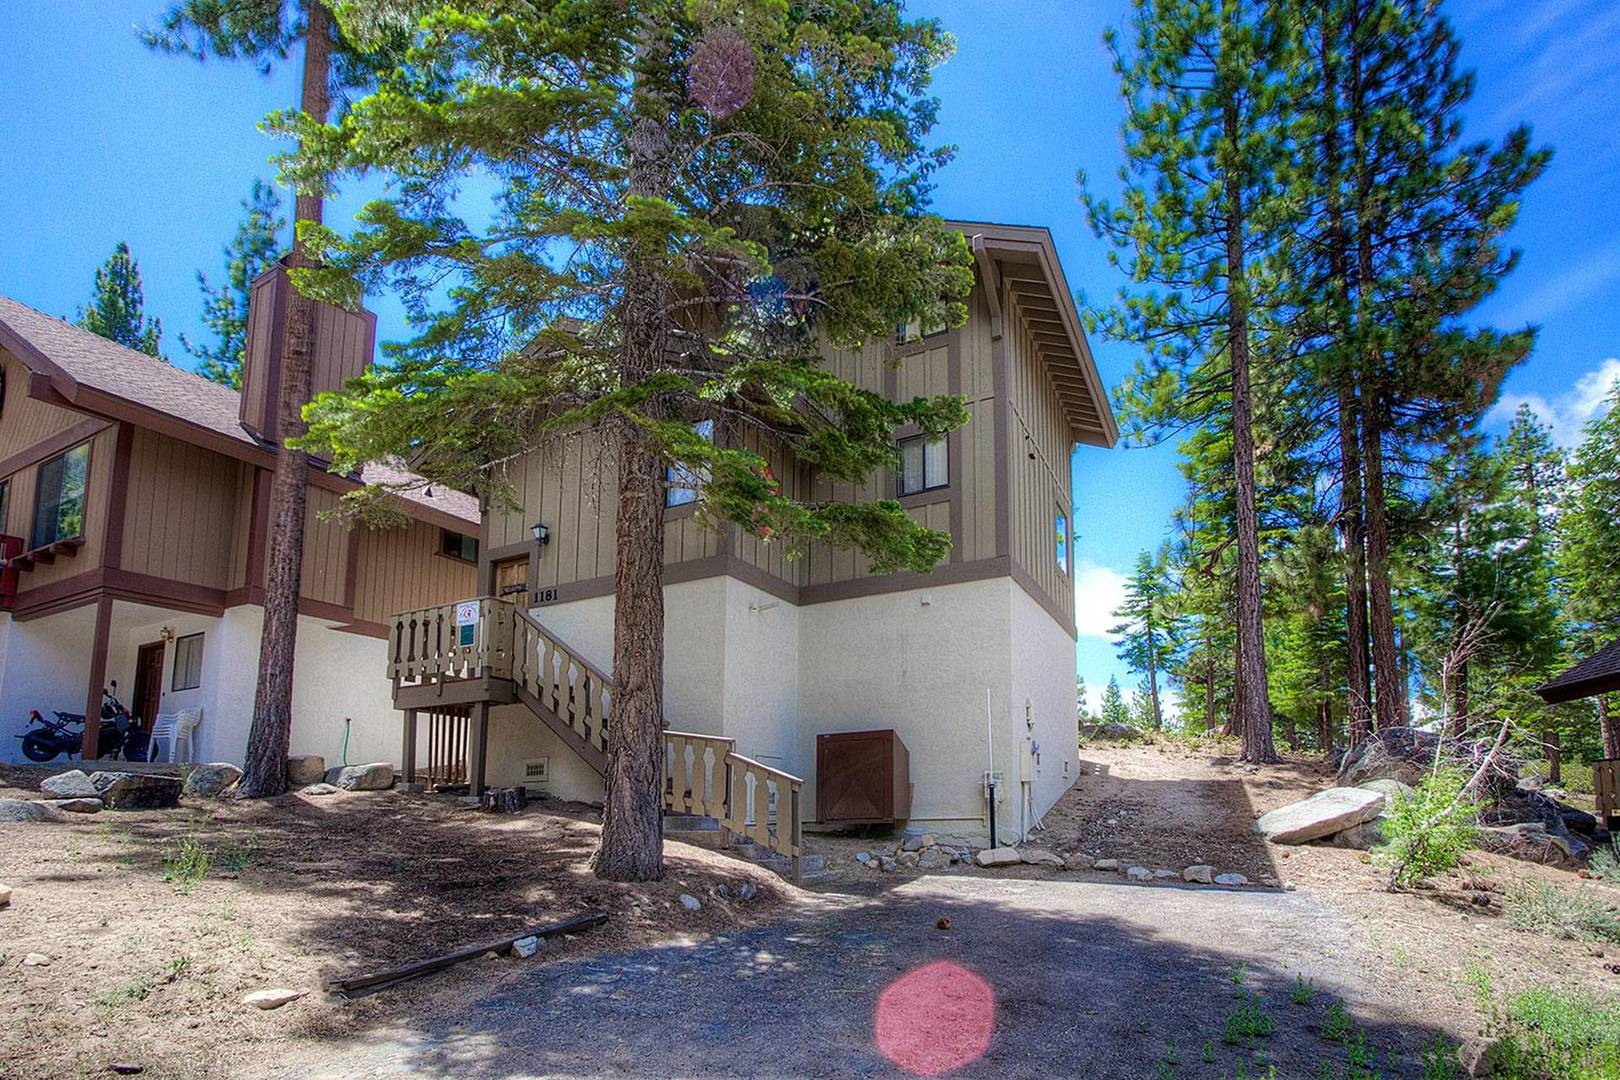 hch0681 lake tahoe vacation rental